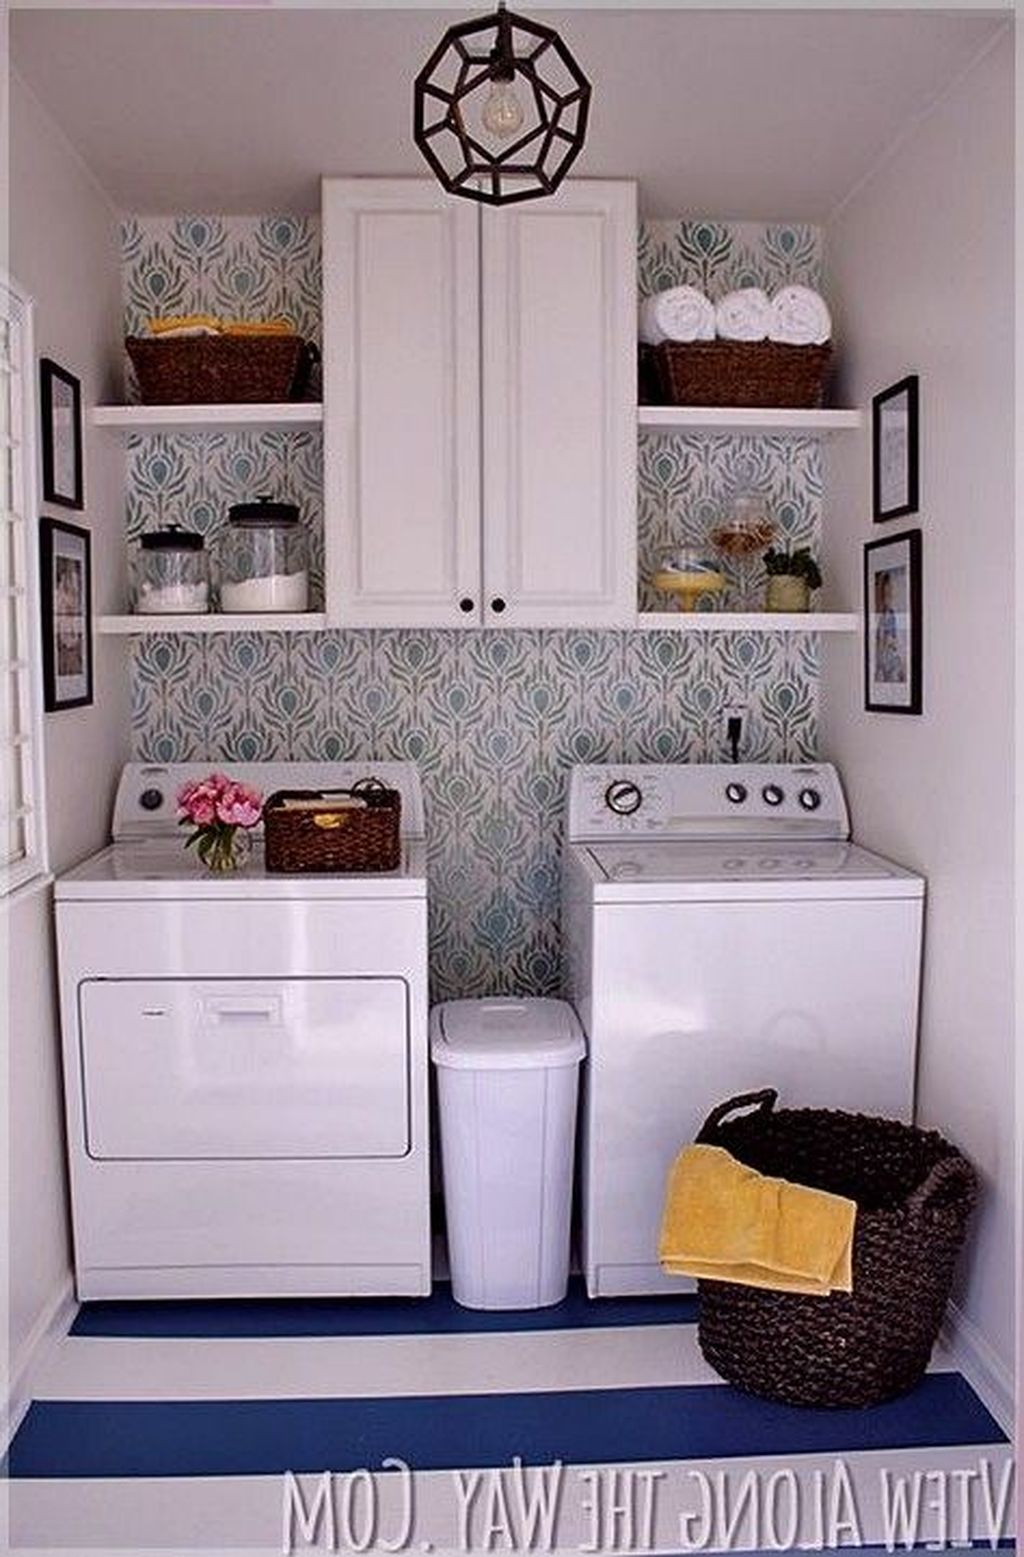 Inspiring Small Laundry Room Design And Decor Ideas 11